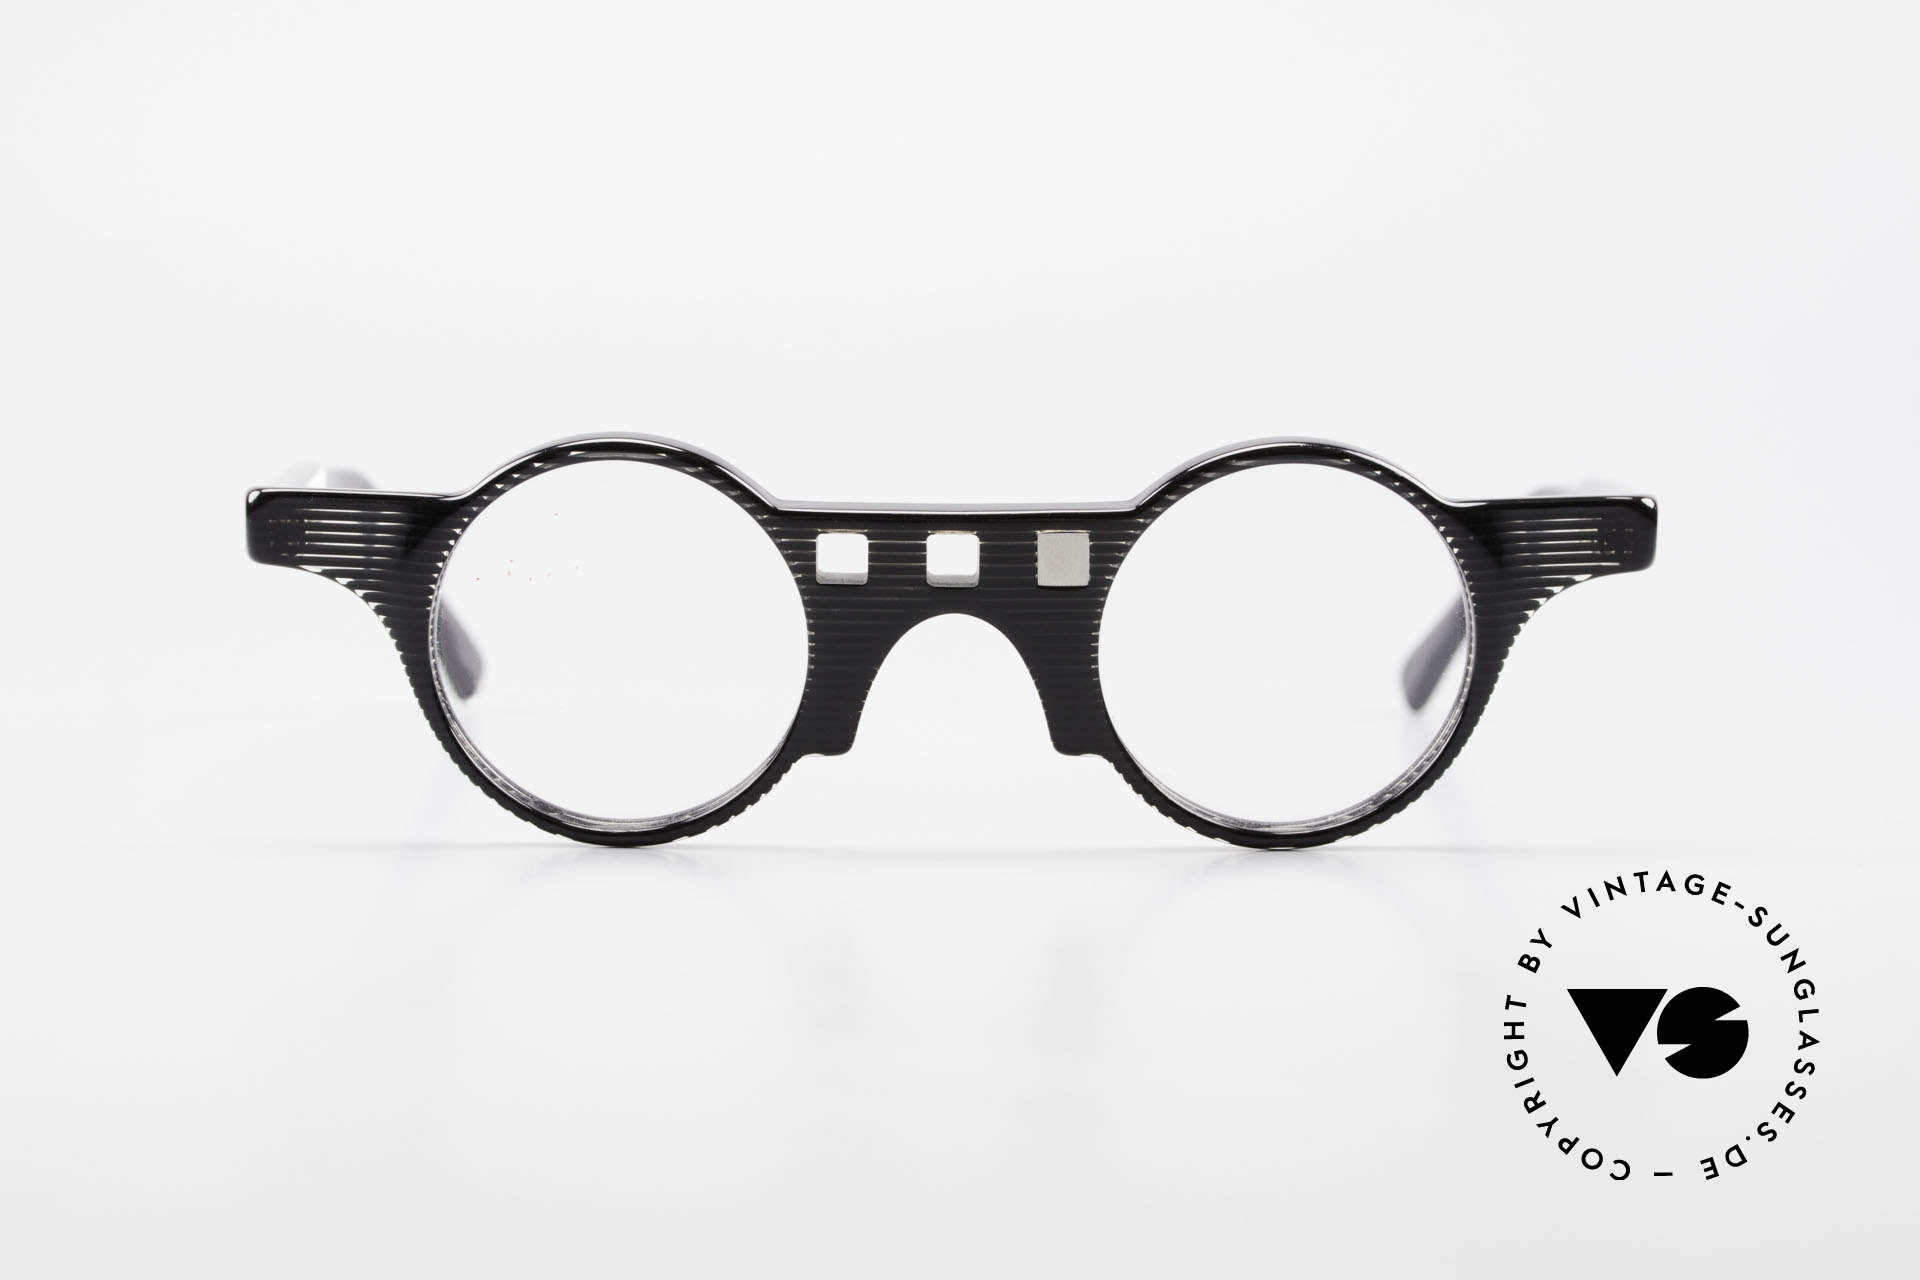 Tattoo Karfunkel 2 Fancy Vintage Eyeglasses, yes, this offer is for both models (199,-€ for two!), Made for Women